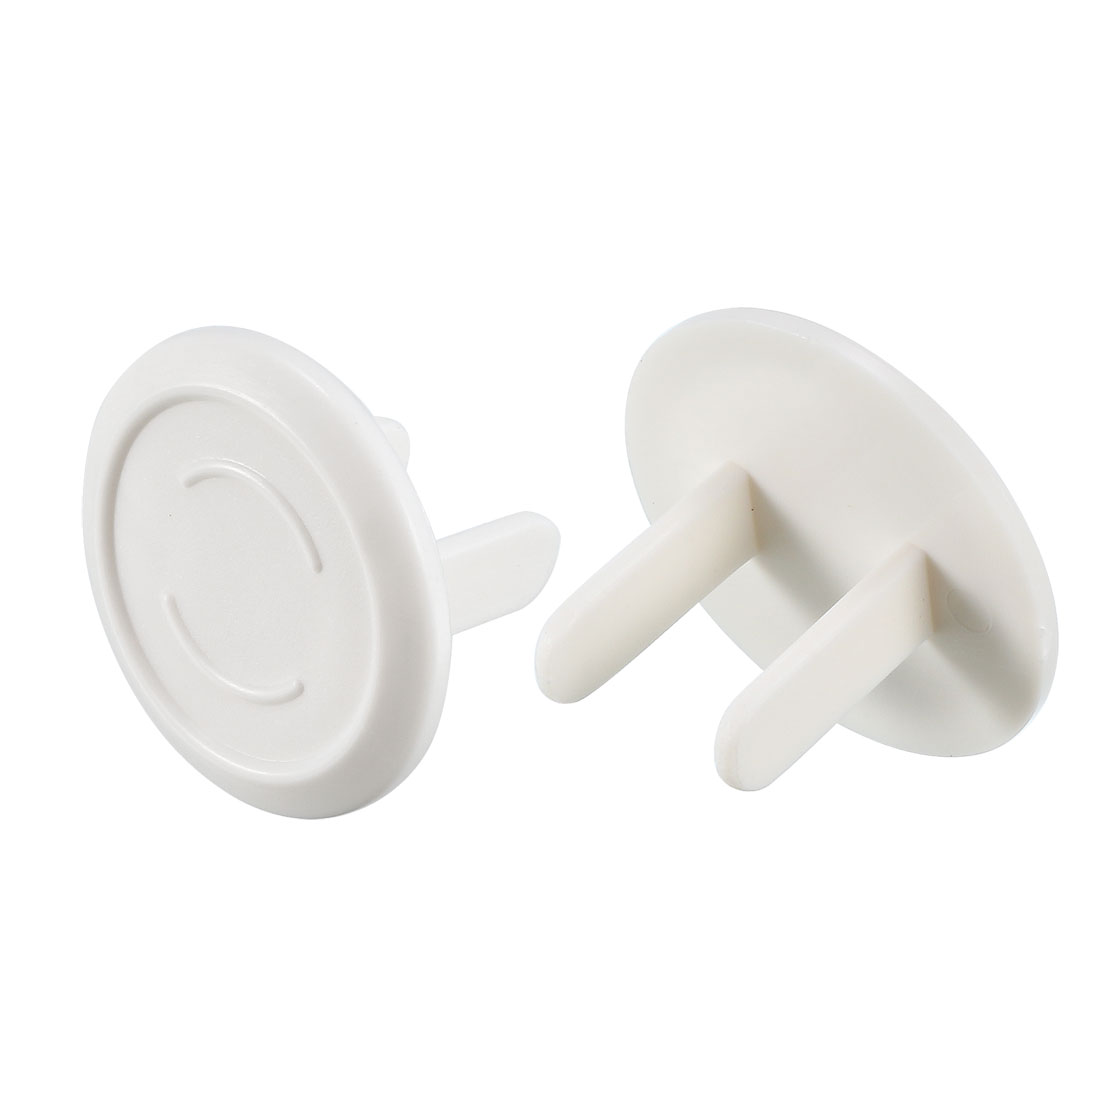 US Standard Power Socket Covers Durable Electrical Protector Round Caps 32 Pcs